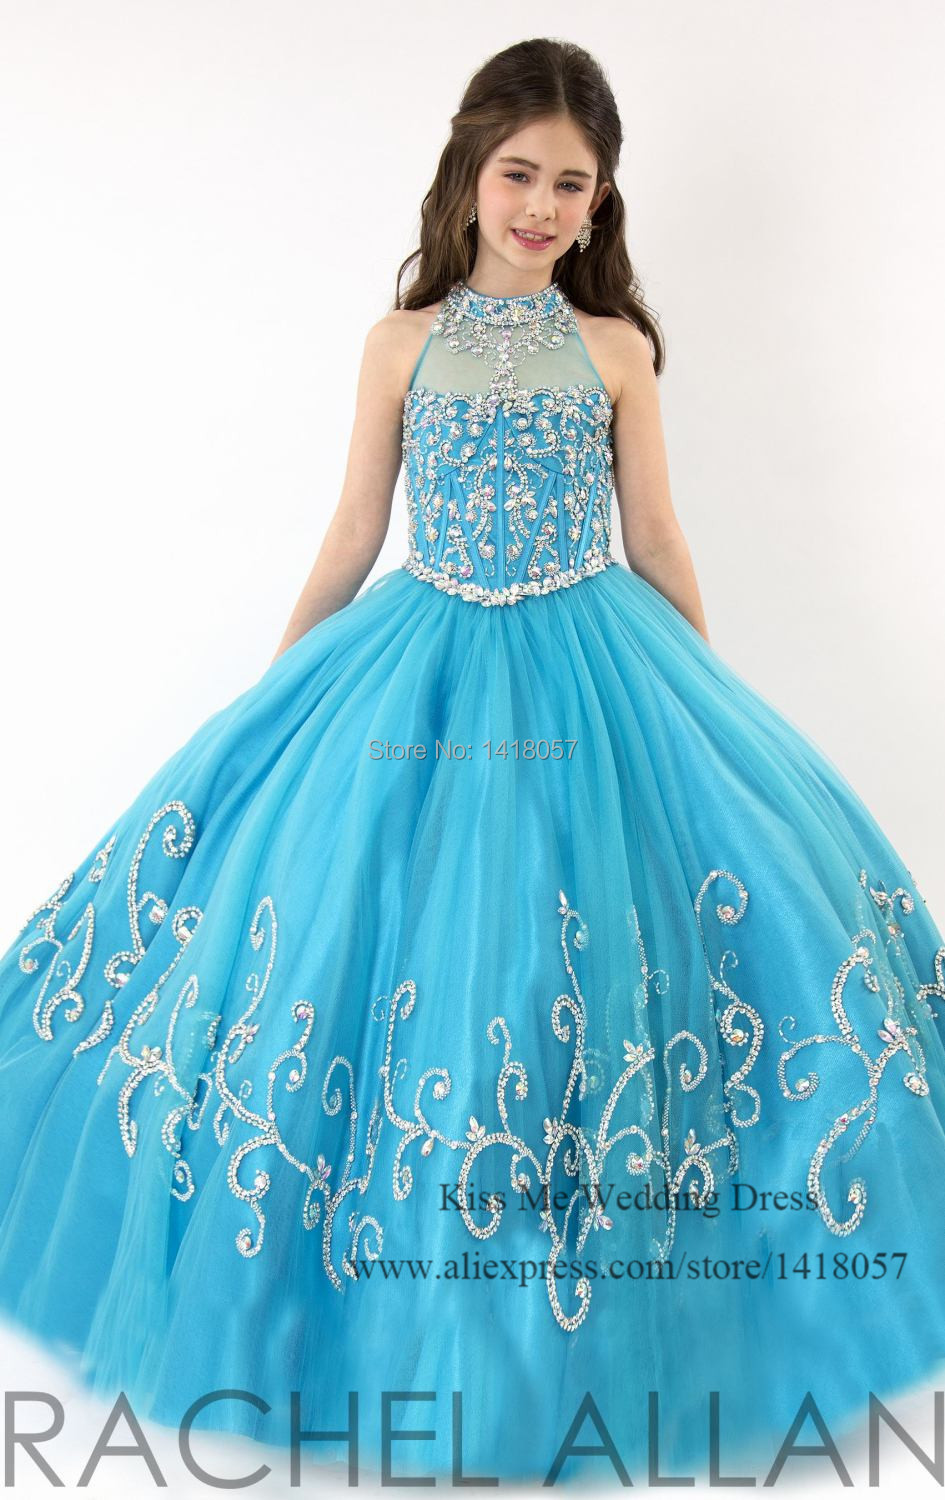 2015 Beautiful Turquoise First Communion Dresses Designer Flower ...